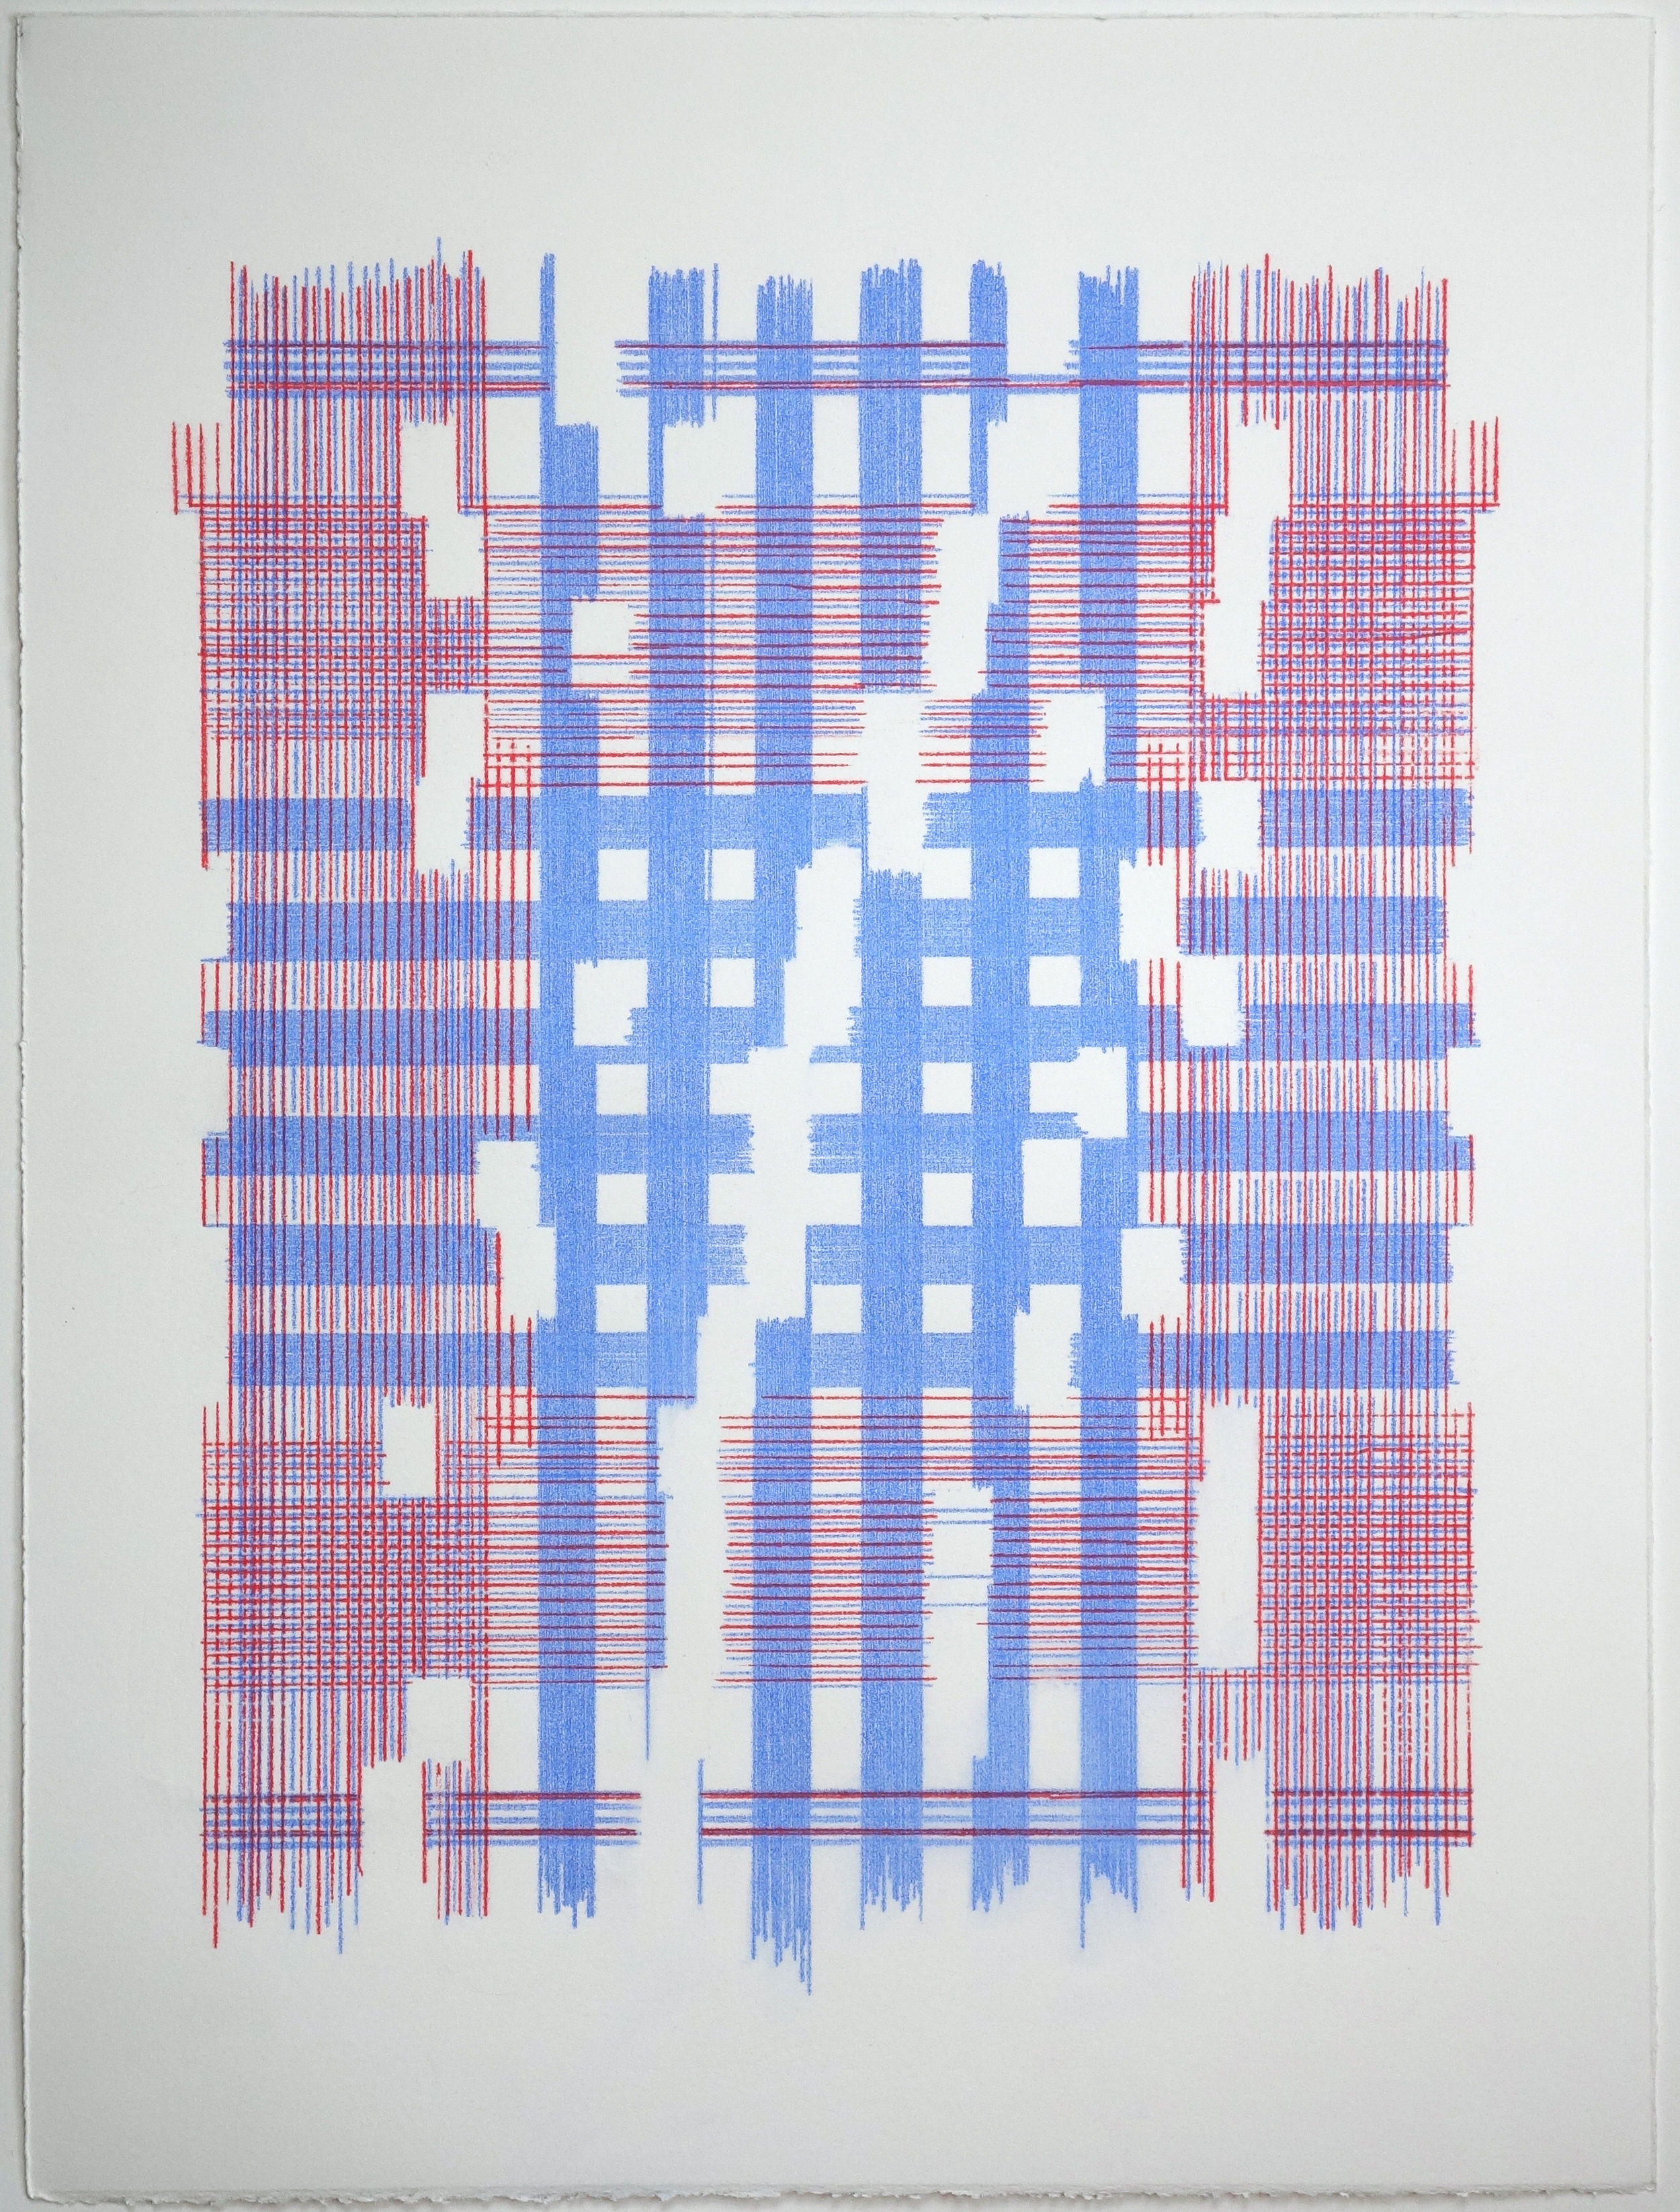 The Most Mysterious Fact (Plaid), 2018 Transfer pigment on paper 23x17.5 in (framed)